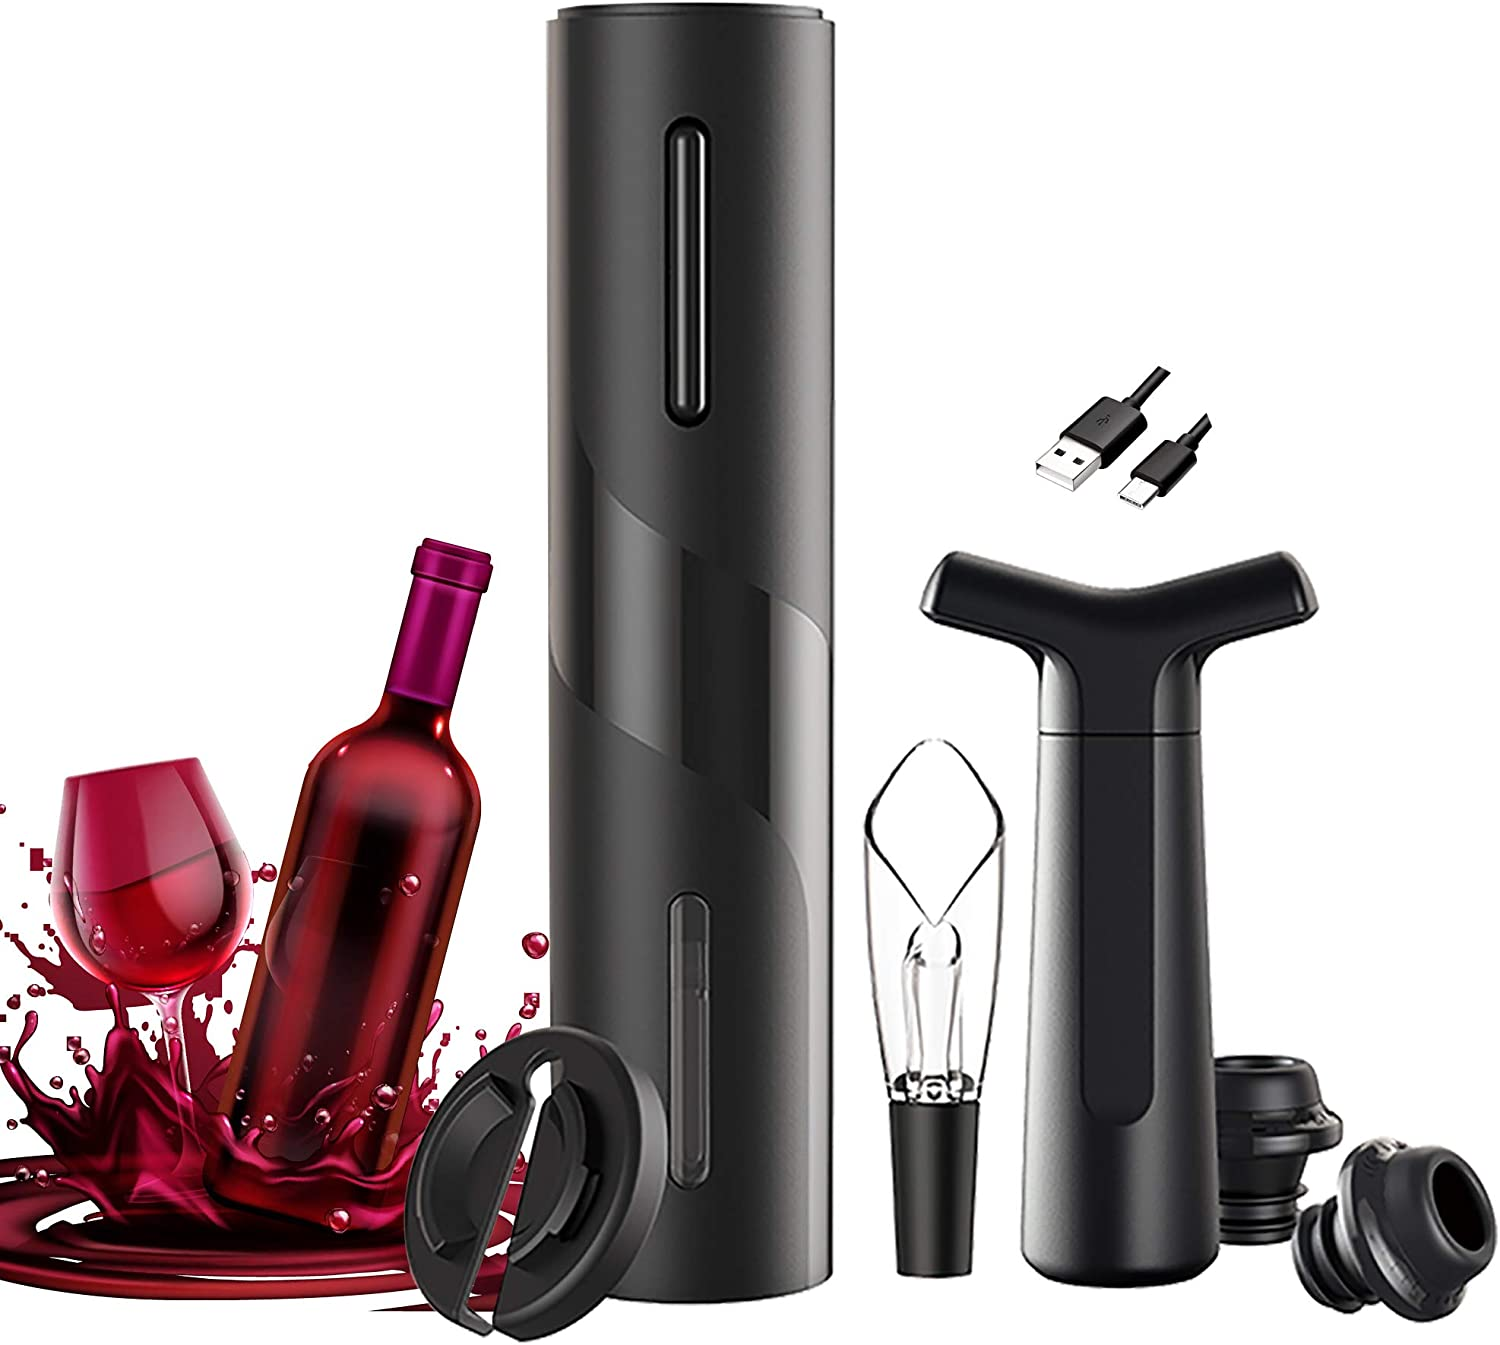 ECTORE Electric Wine Bottle Opener , Automatic Corkscrew Cordless Set Rechargeable With Foil Cutter, Vacuum Pump Plus 2 Stoppers, Aerator & Pourer, USB Charging Cable For Wine Lover 5-in-1 Gift Set